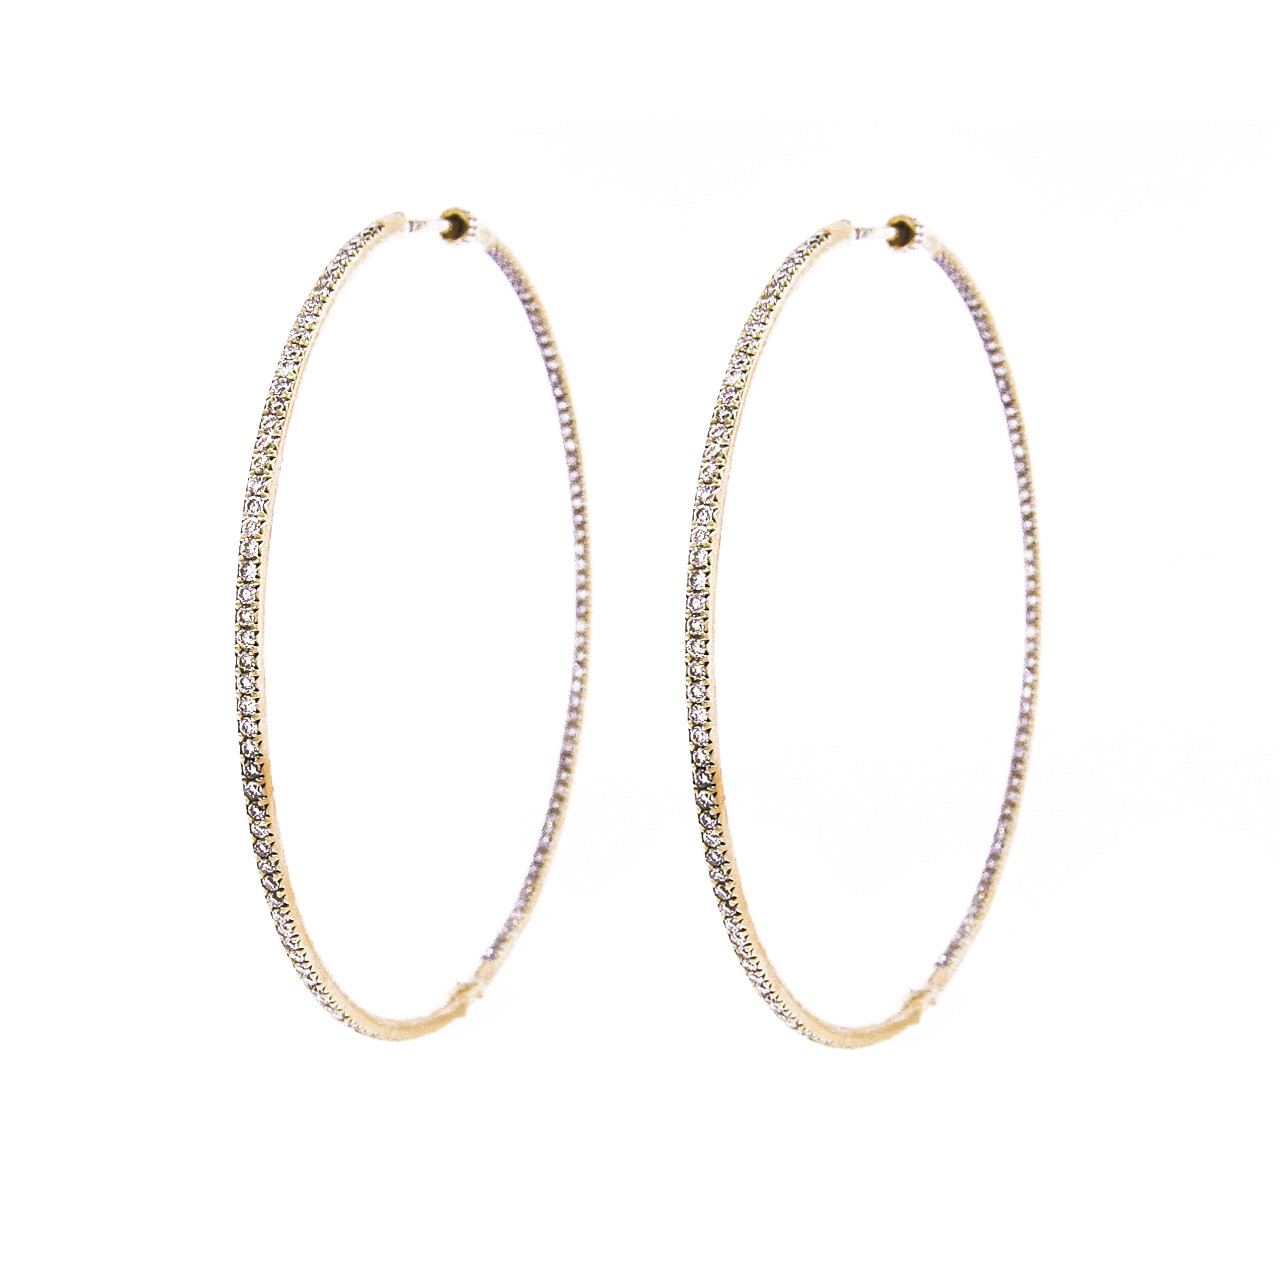 970badf0386620 ... Extra Large Yellow Gold Diamond Hoop Earrings. Soho Gem Online Jewelry  Store and Fine Jewelry Boutique, New York City